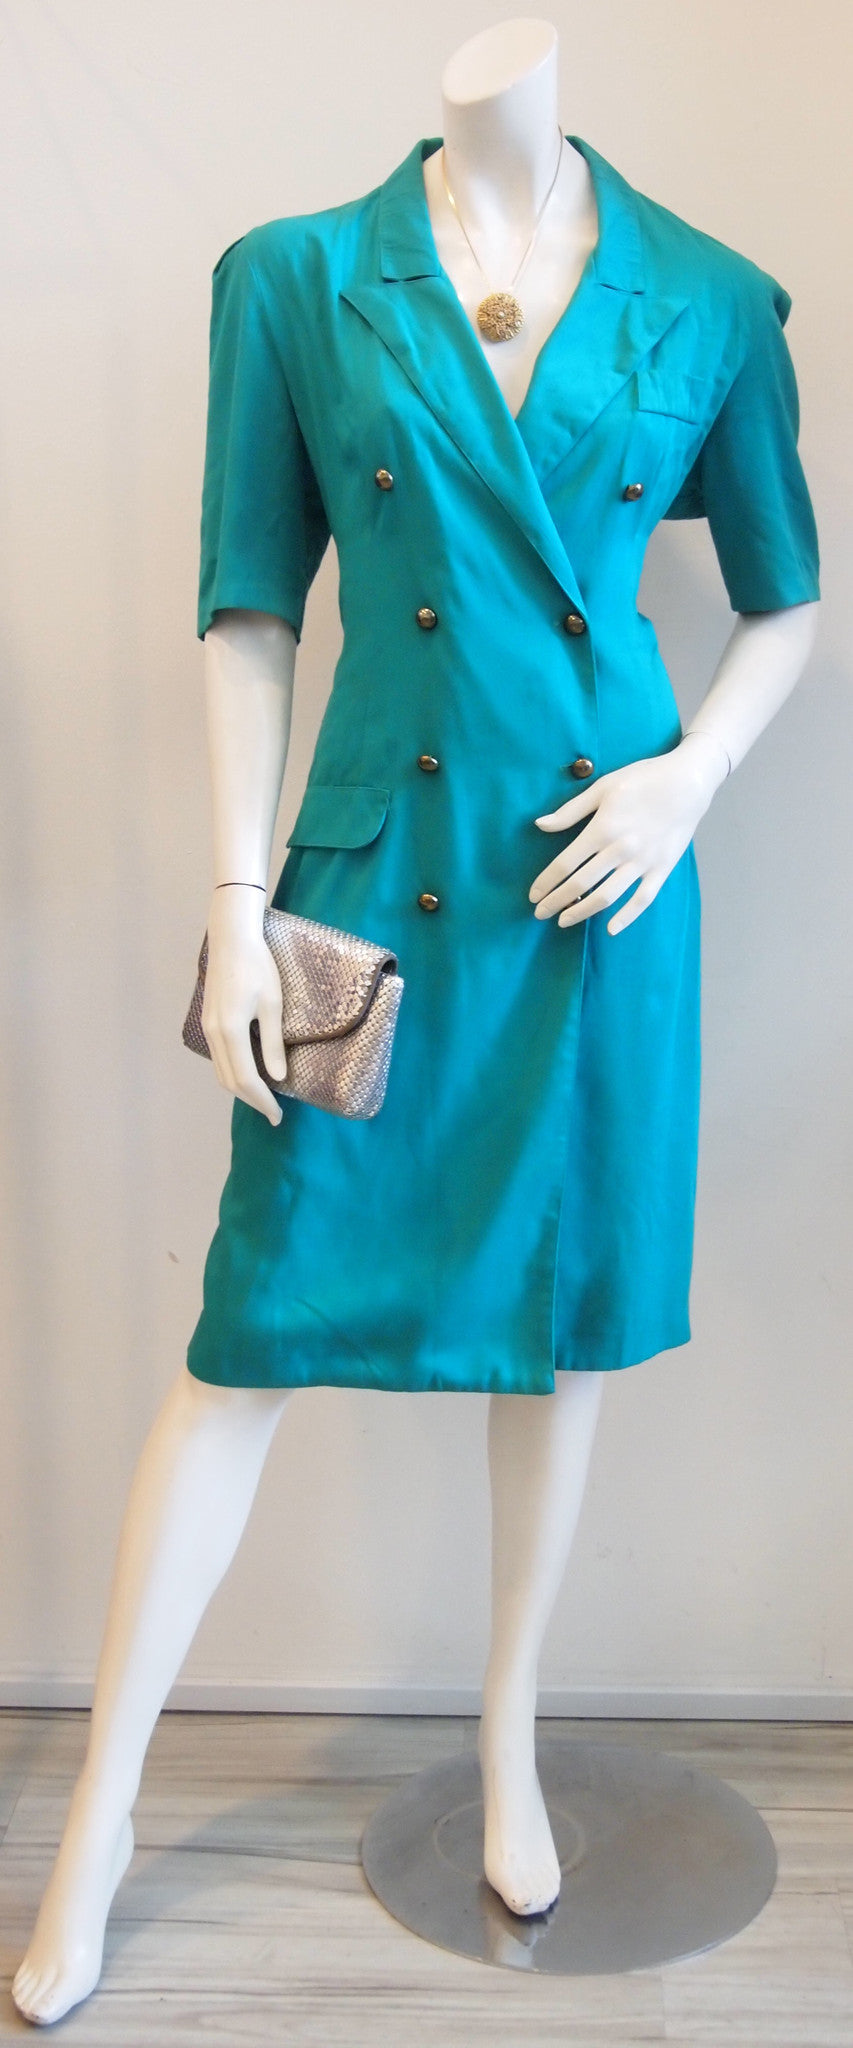 Joining The Troops Green Military Trench Dress